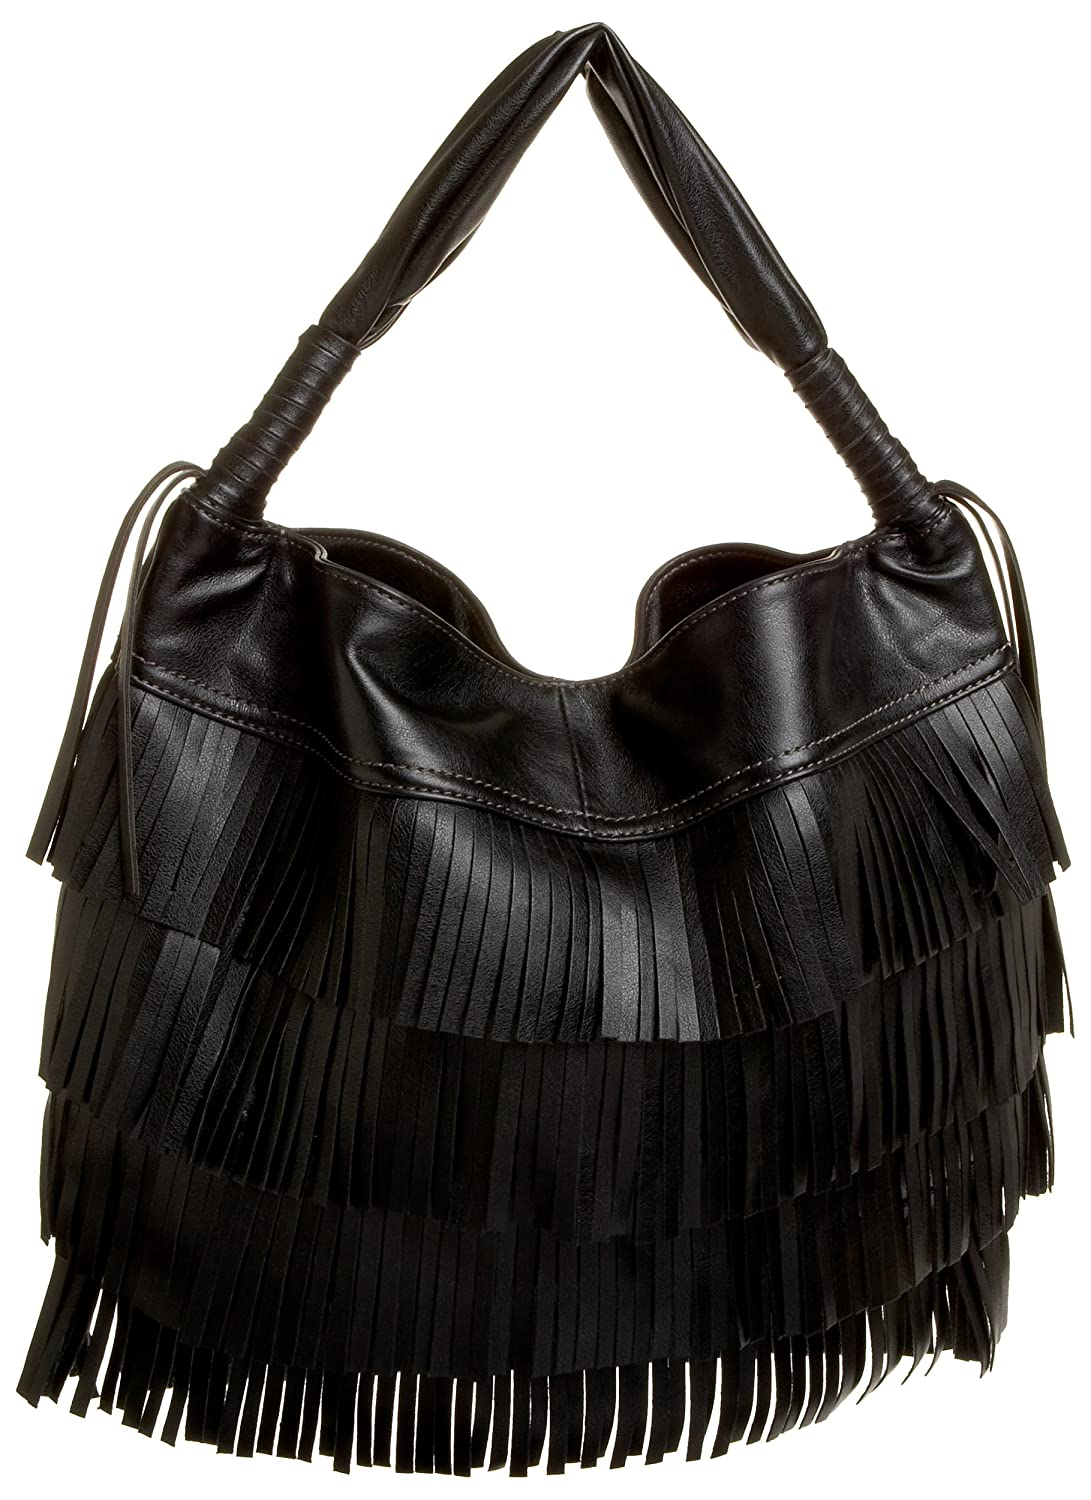 Melie Bianco Fringe Hobo - Free Overnight Shipping & Return Shipping: Endless.com